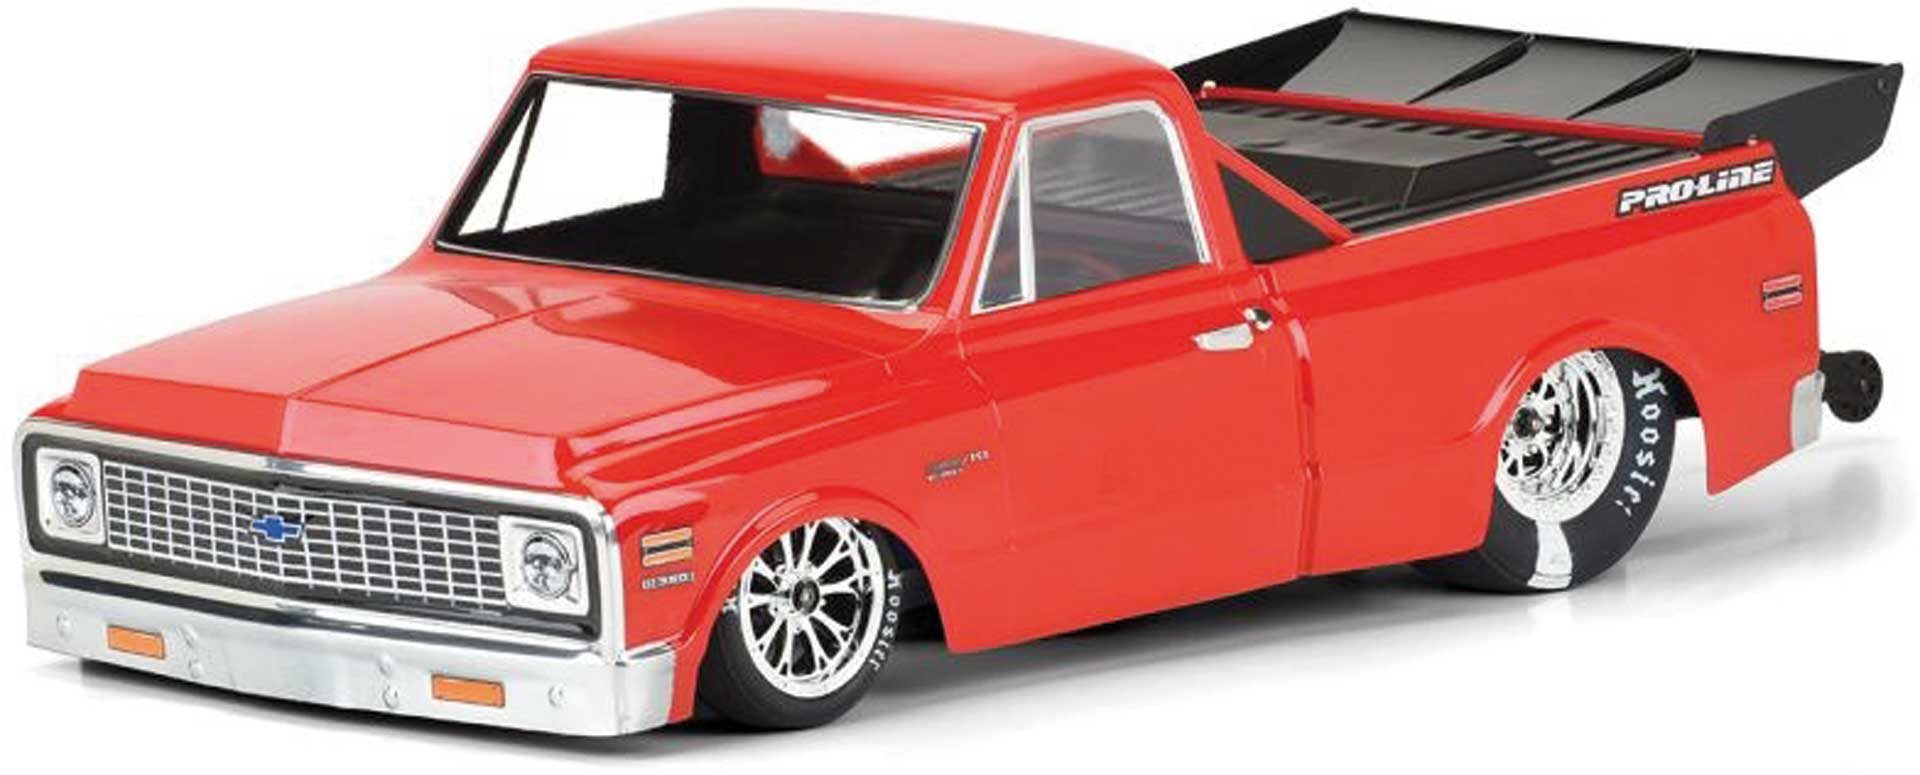 PROLINE 1972 CHEVY C-10 CHECK CLEAR FOR SLASH 2WD